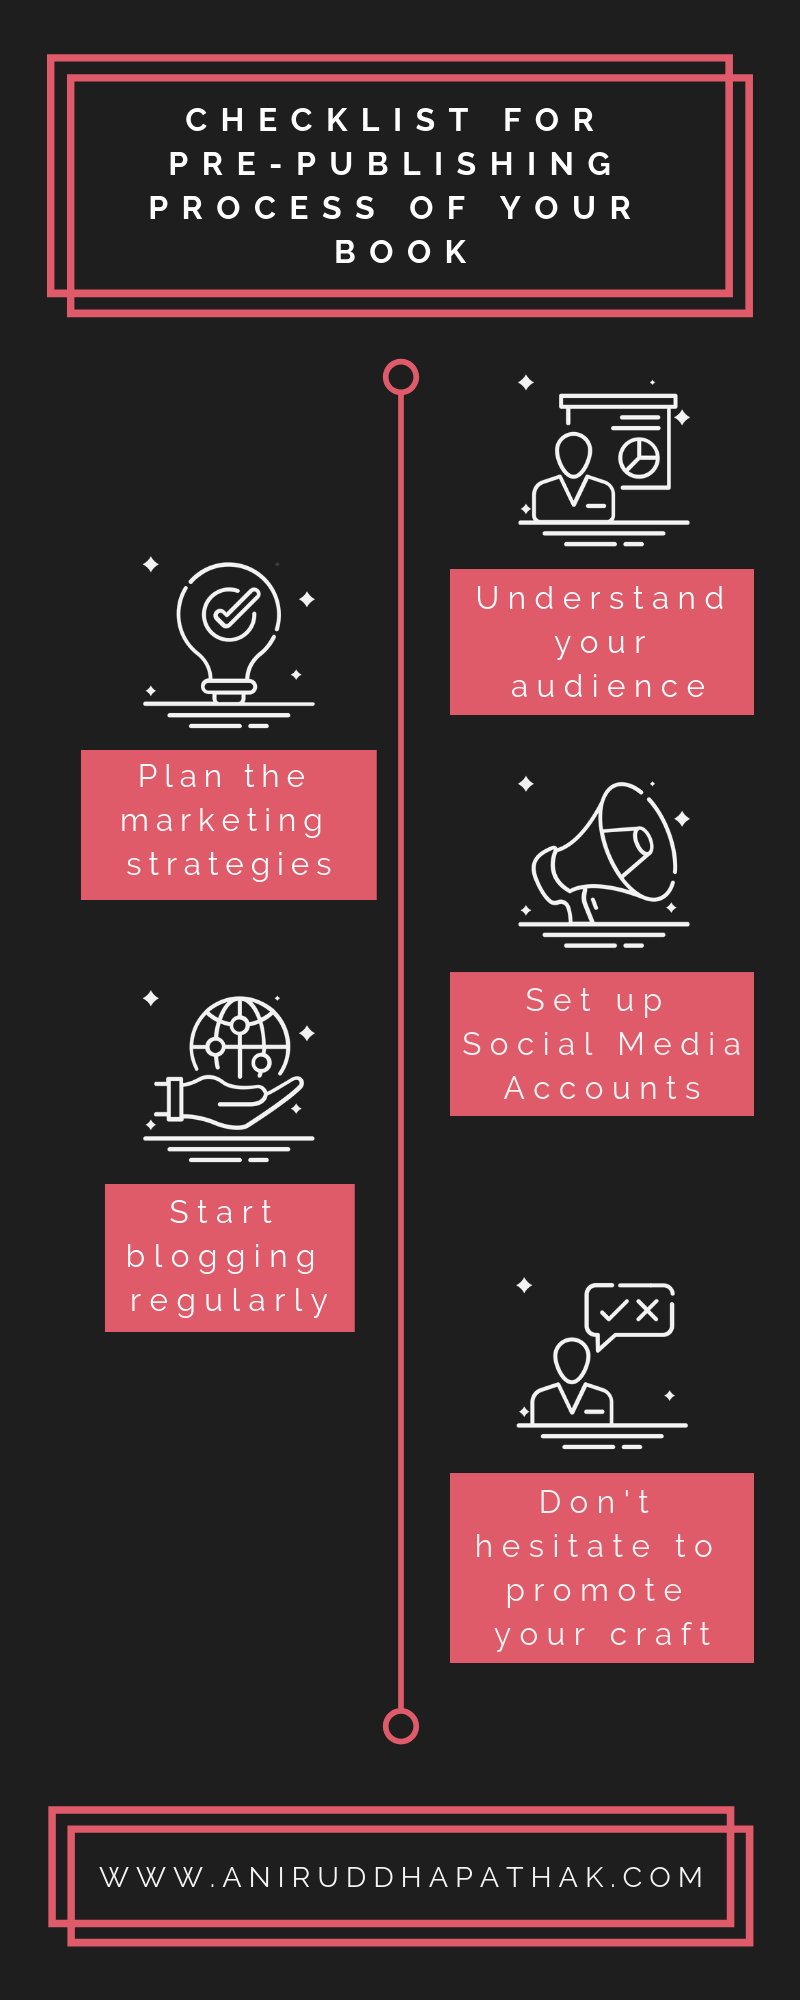 Checklist Infographic - Self Publish Books in India